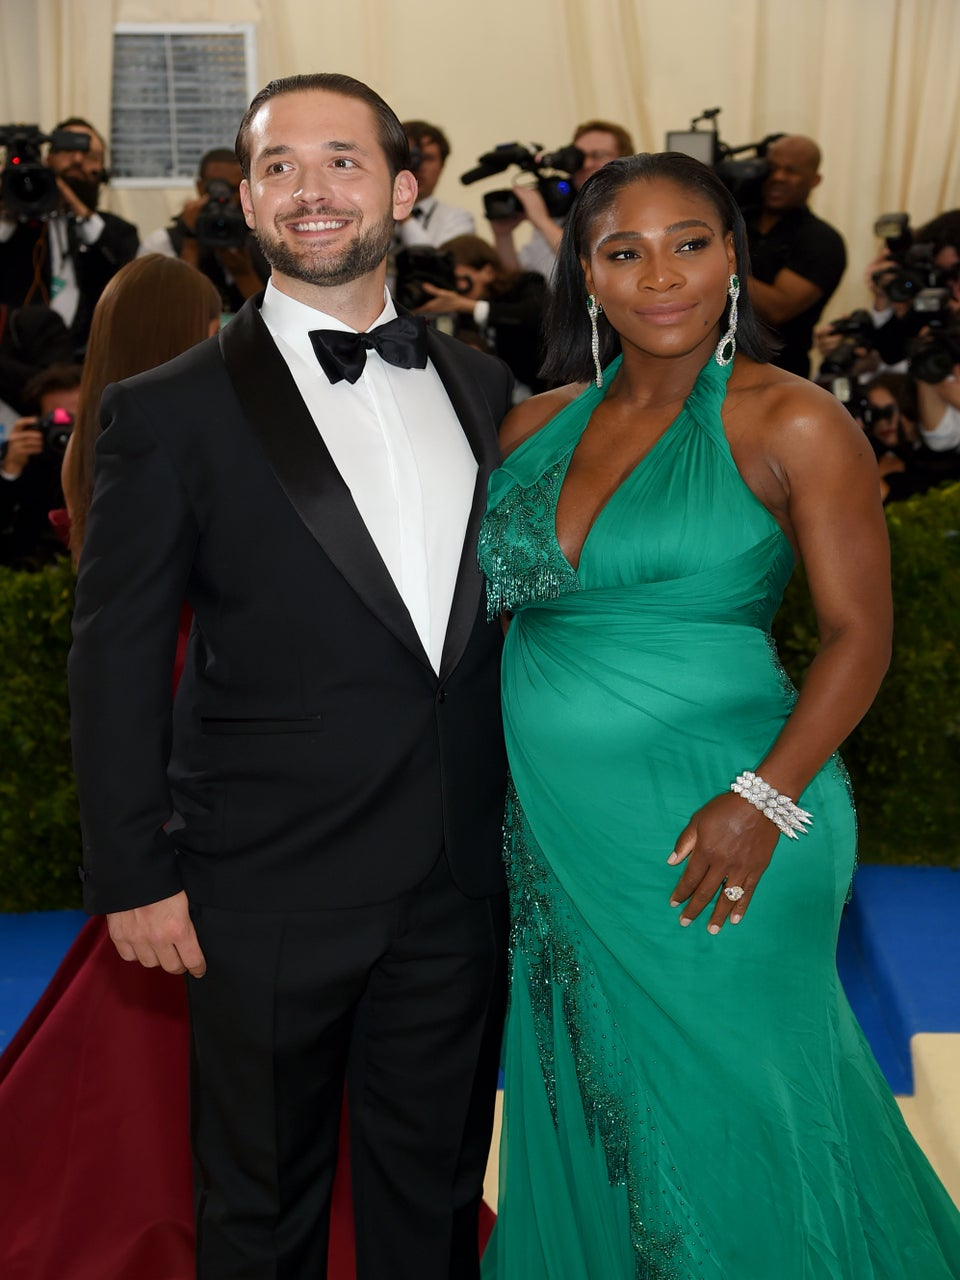 Serena Williams, Her Baby Bump And Fiancé Alexis Ohanian Bring Love To The Met Gala Red Carpet